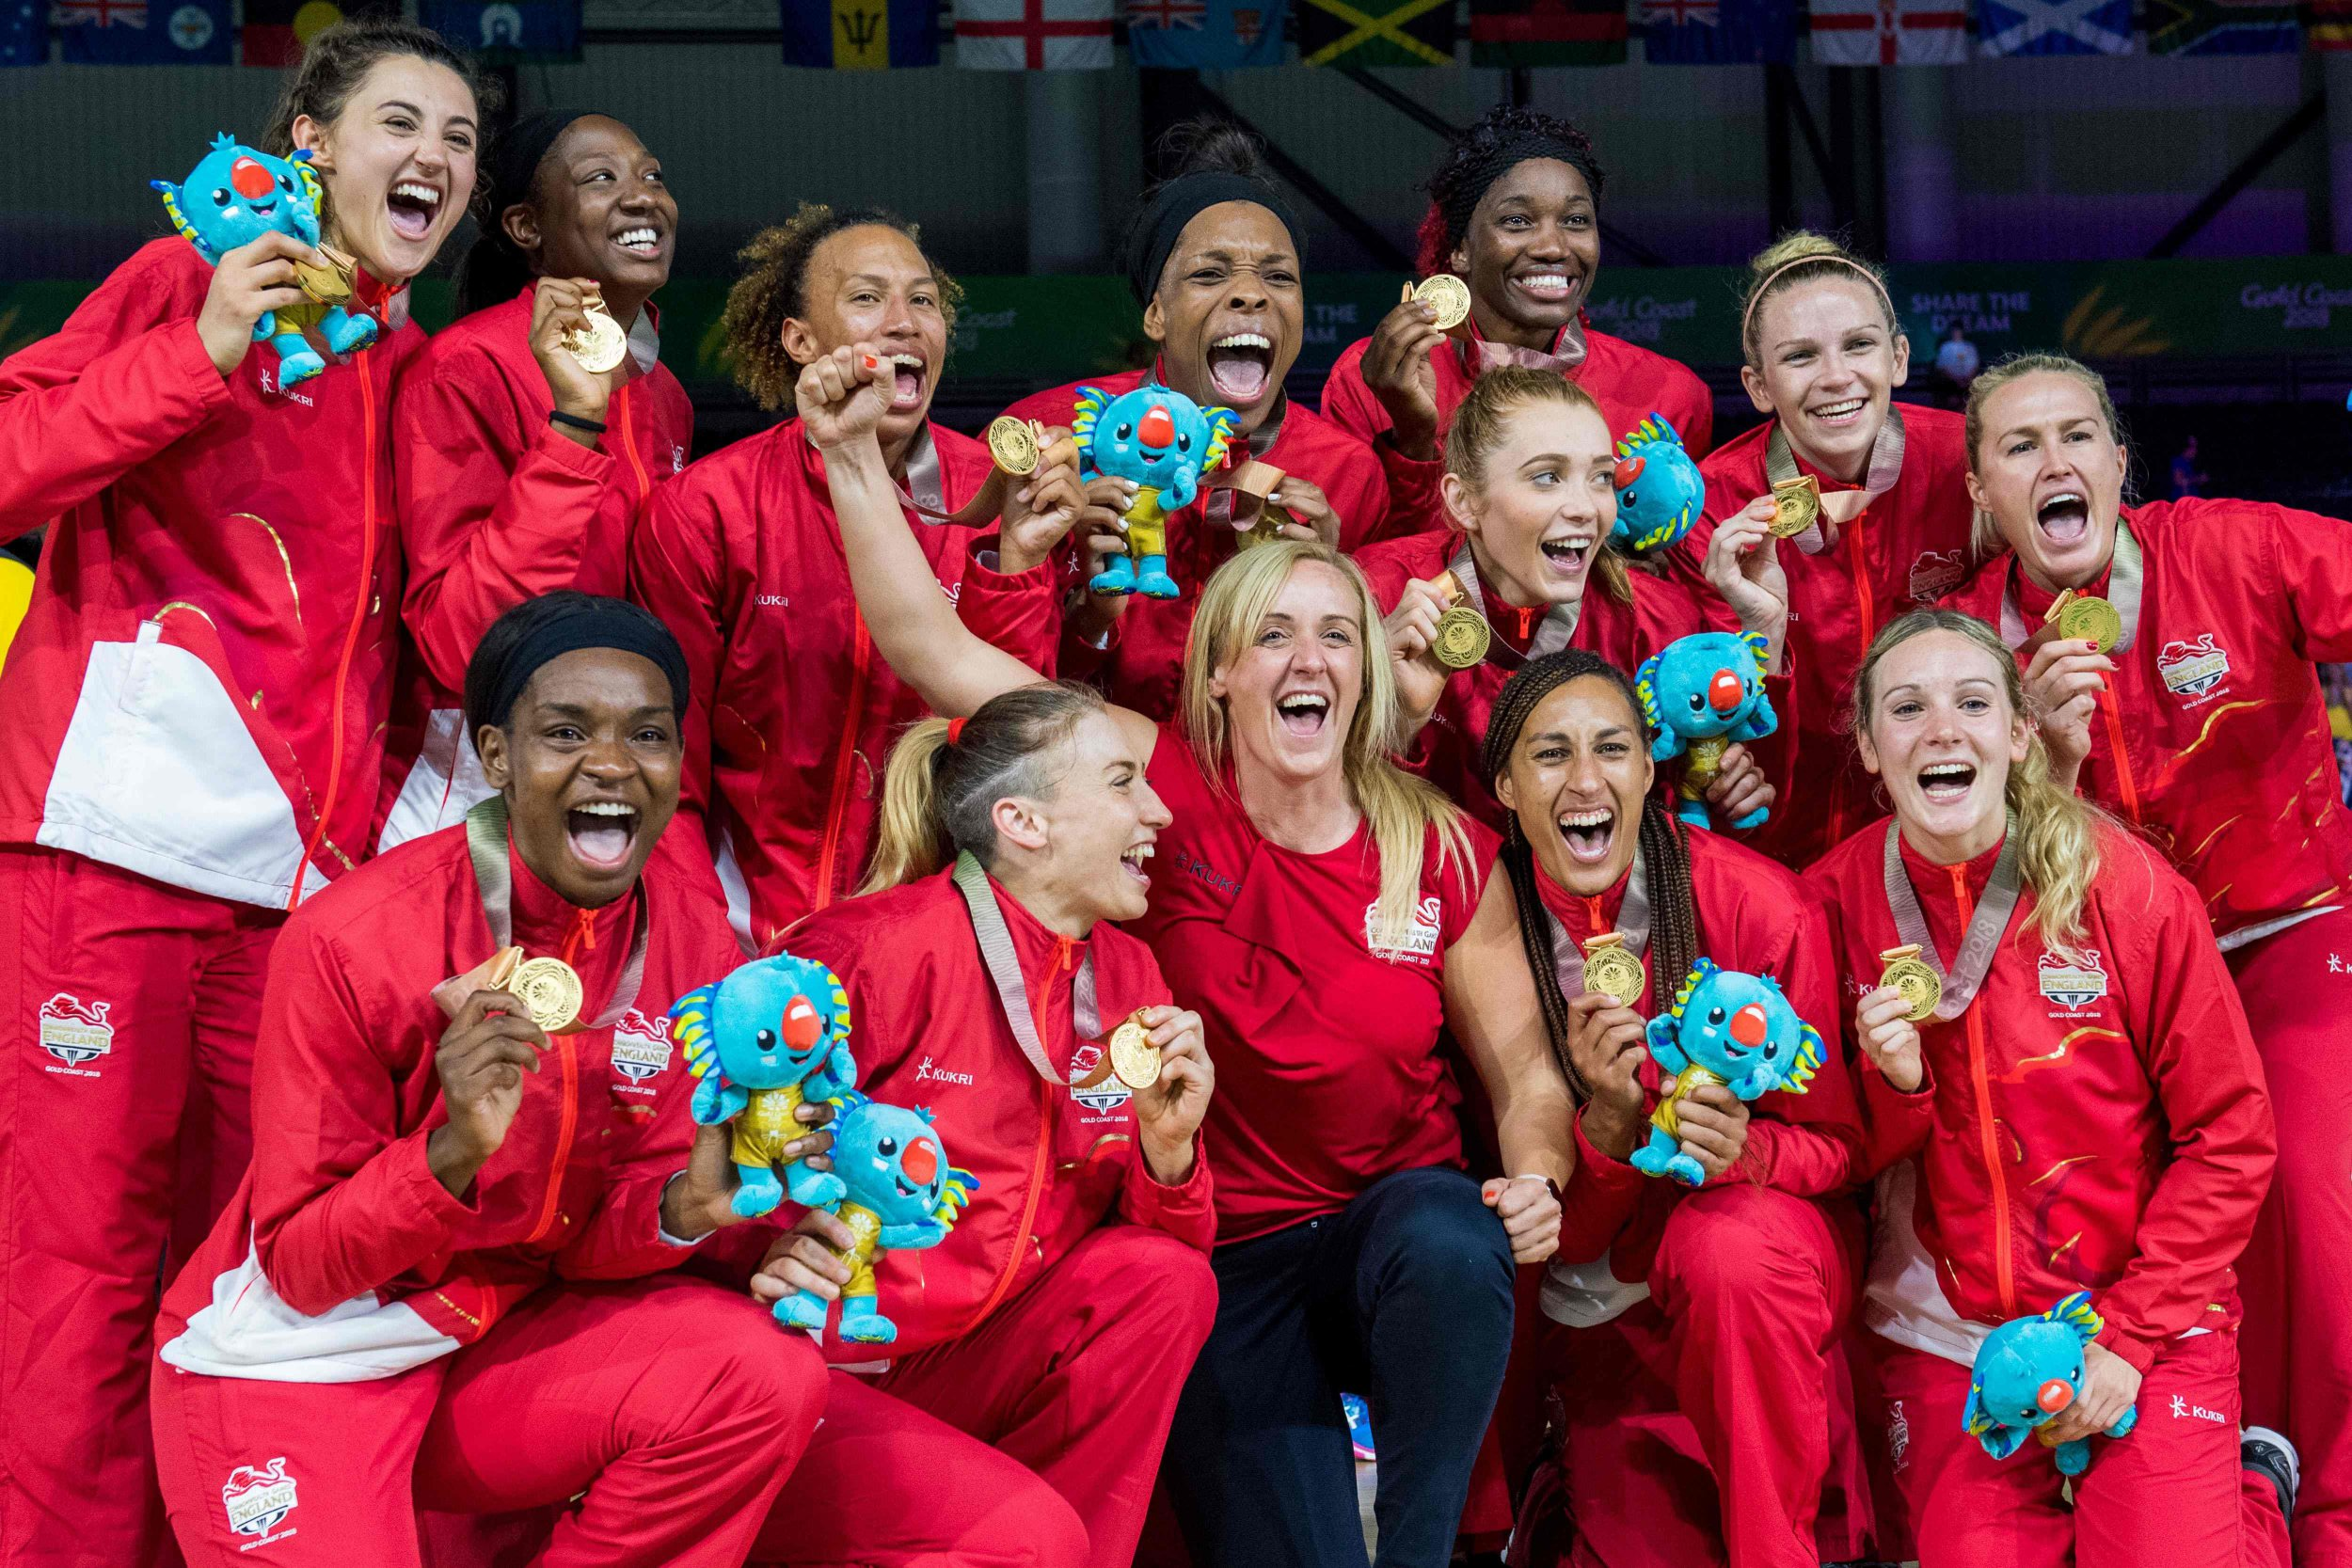 The England team poses with their gold medals after beating Australia in the women's netball gold medal match during the 2018 Gold Coast Commonwealth at the Coomera Indoor Sports Centre on the Gold Coast on April 15, 2018. / AFP PHOTO / Fran??ois-Xavier MARITFRANCOIS-XAVIER MARIT/AFP/Getty Images